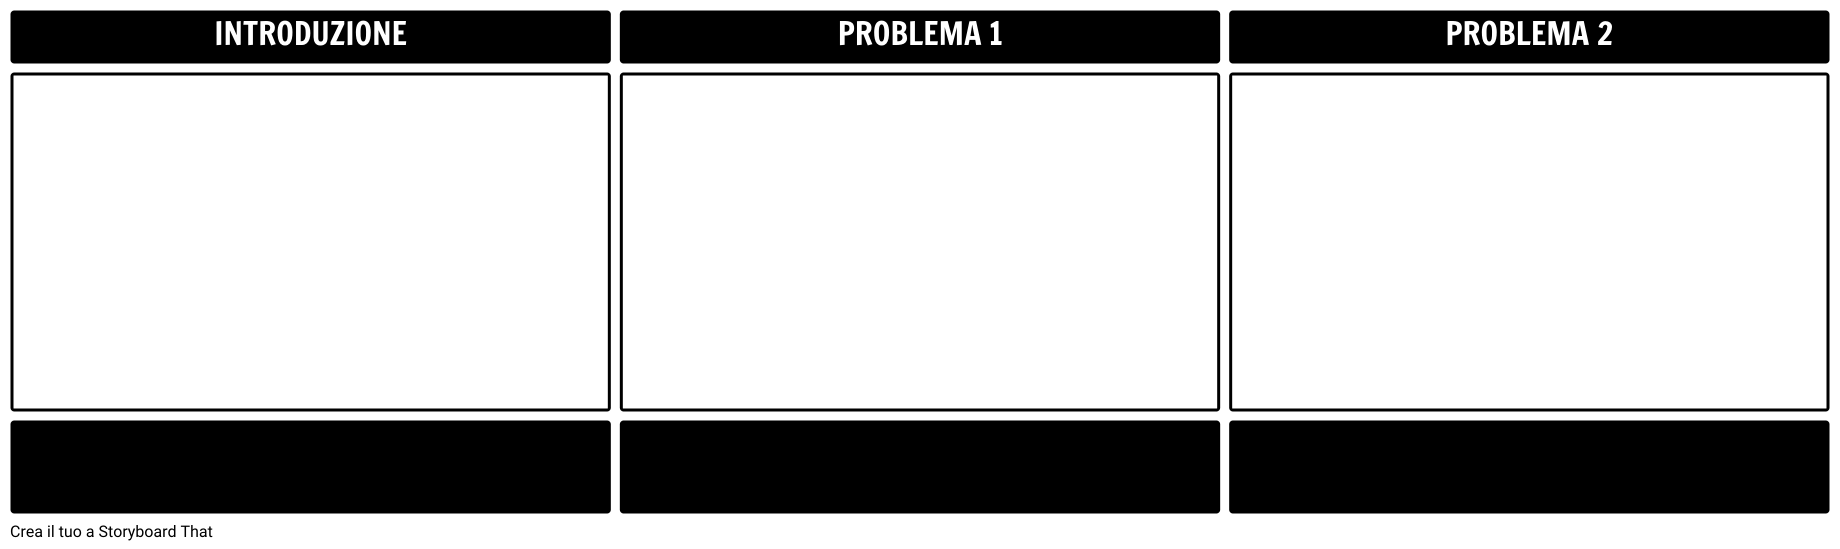 Dilemma 16x9 Template